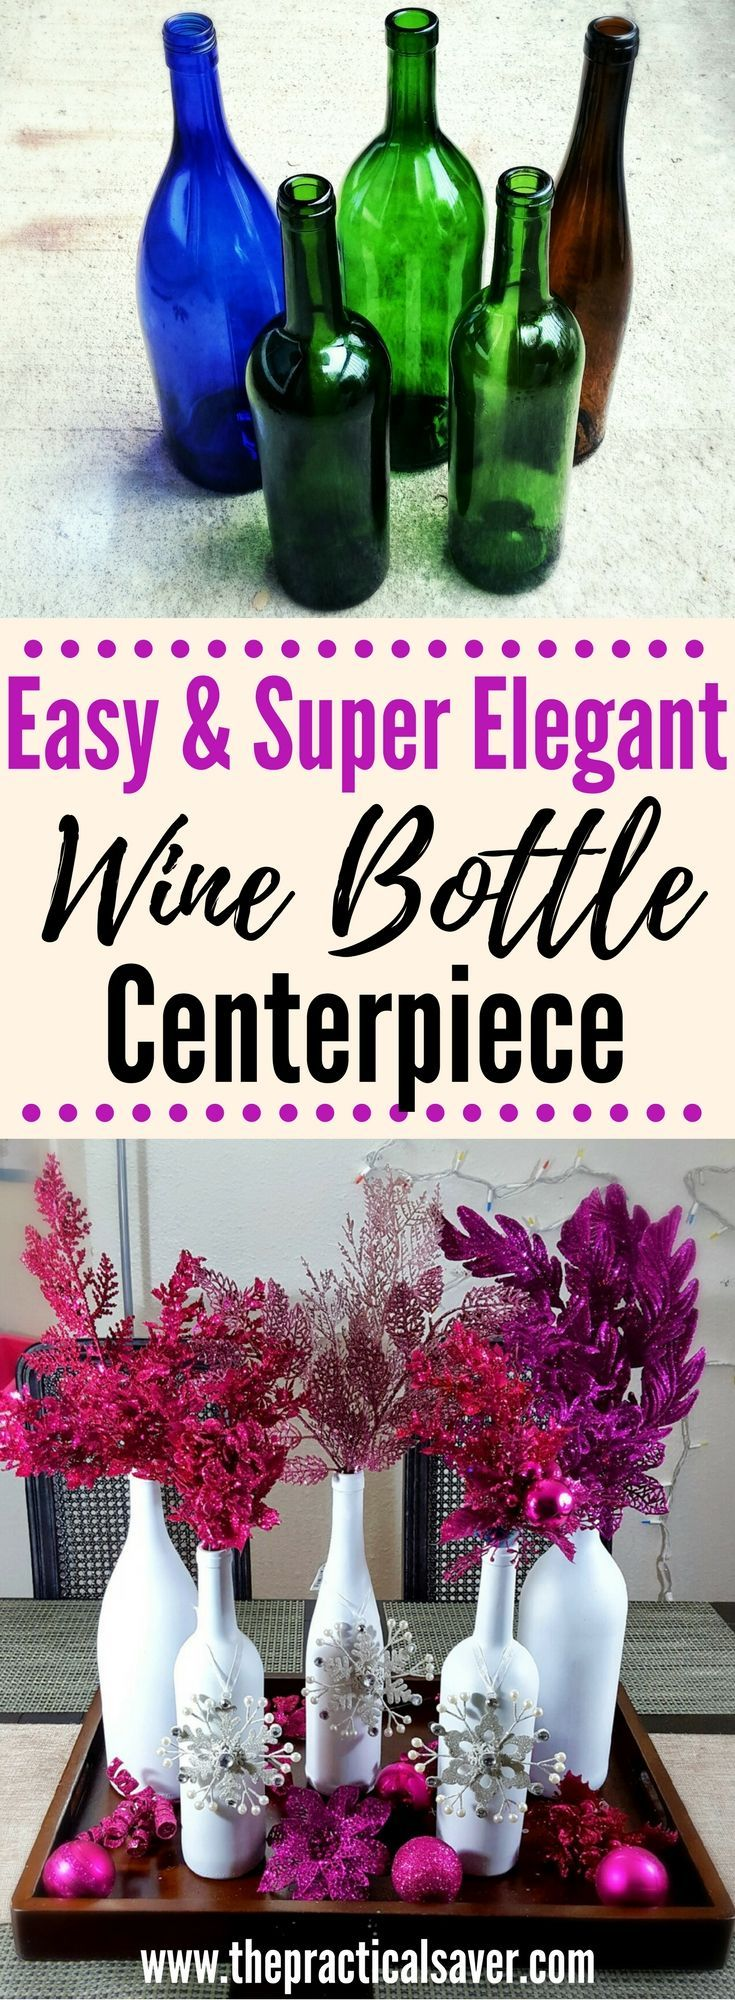 Wine Bottle Christmas Décor Centerpiece. Elegant yet simple diy to beautify your table. Christmas DIY l Christmas ideas l frugal ideas table centerpiece l homemade centerpiece l homemade diy l easy diy l cheap diy